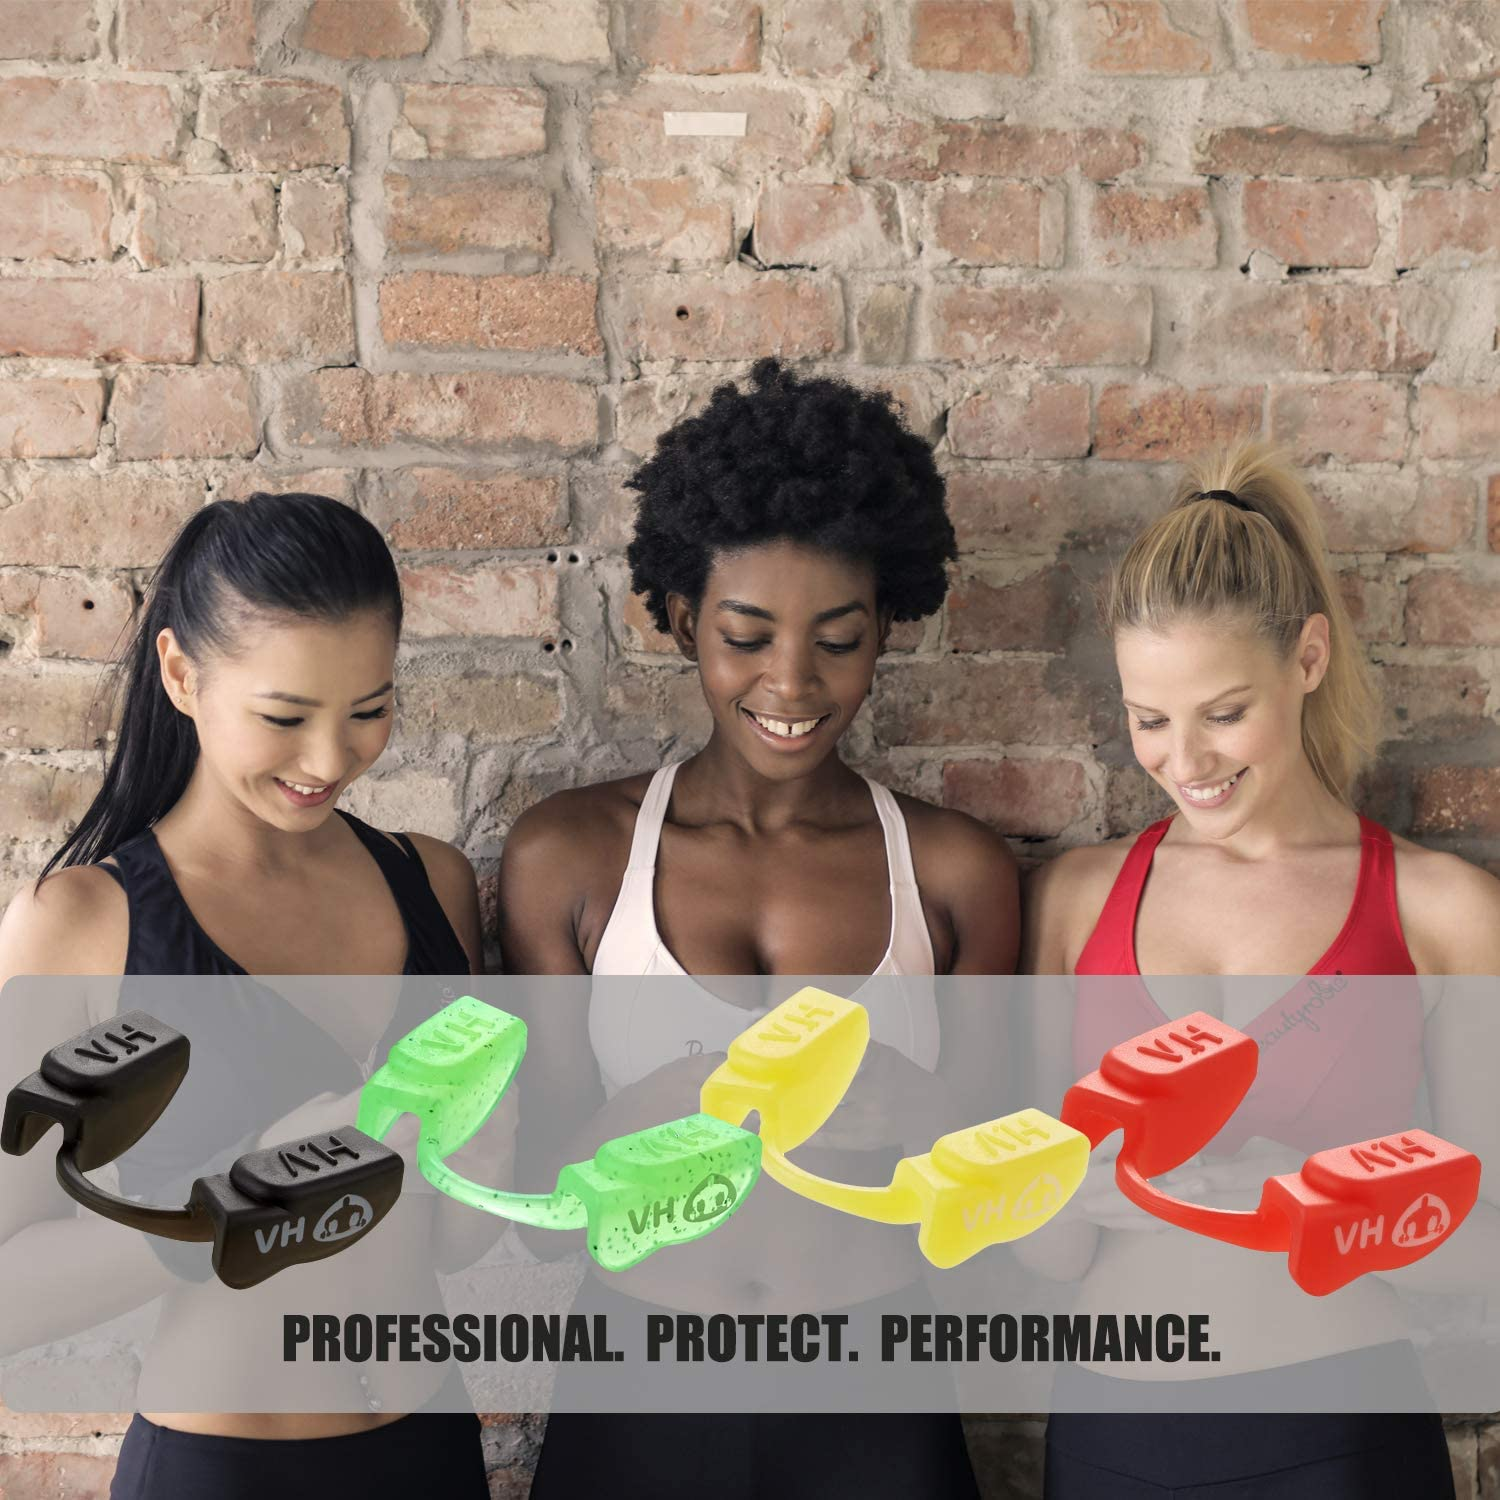 Powerlifting Weightlifting Strength Training Teeth Protective,Low Jaw,No Contract Powerlifting Mouthguards for Women